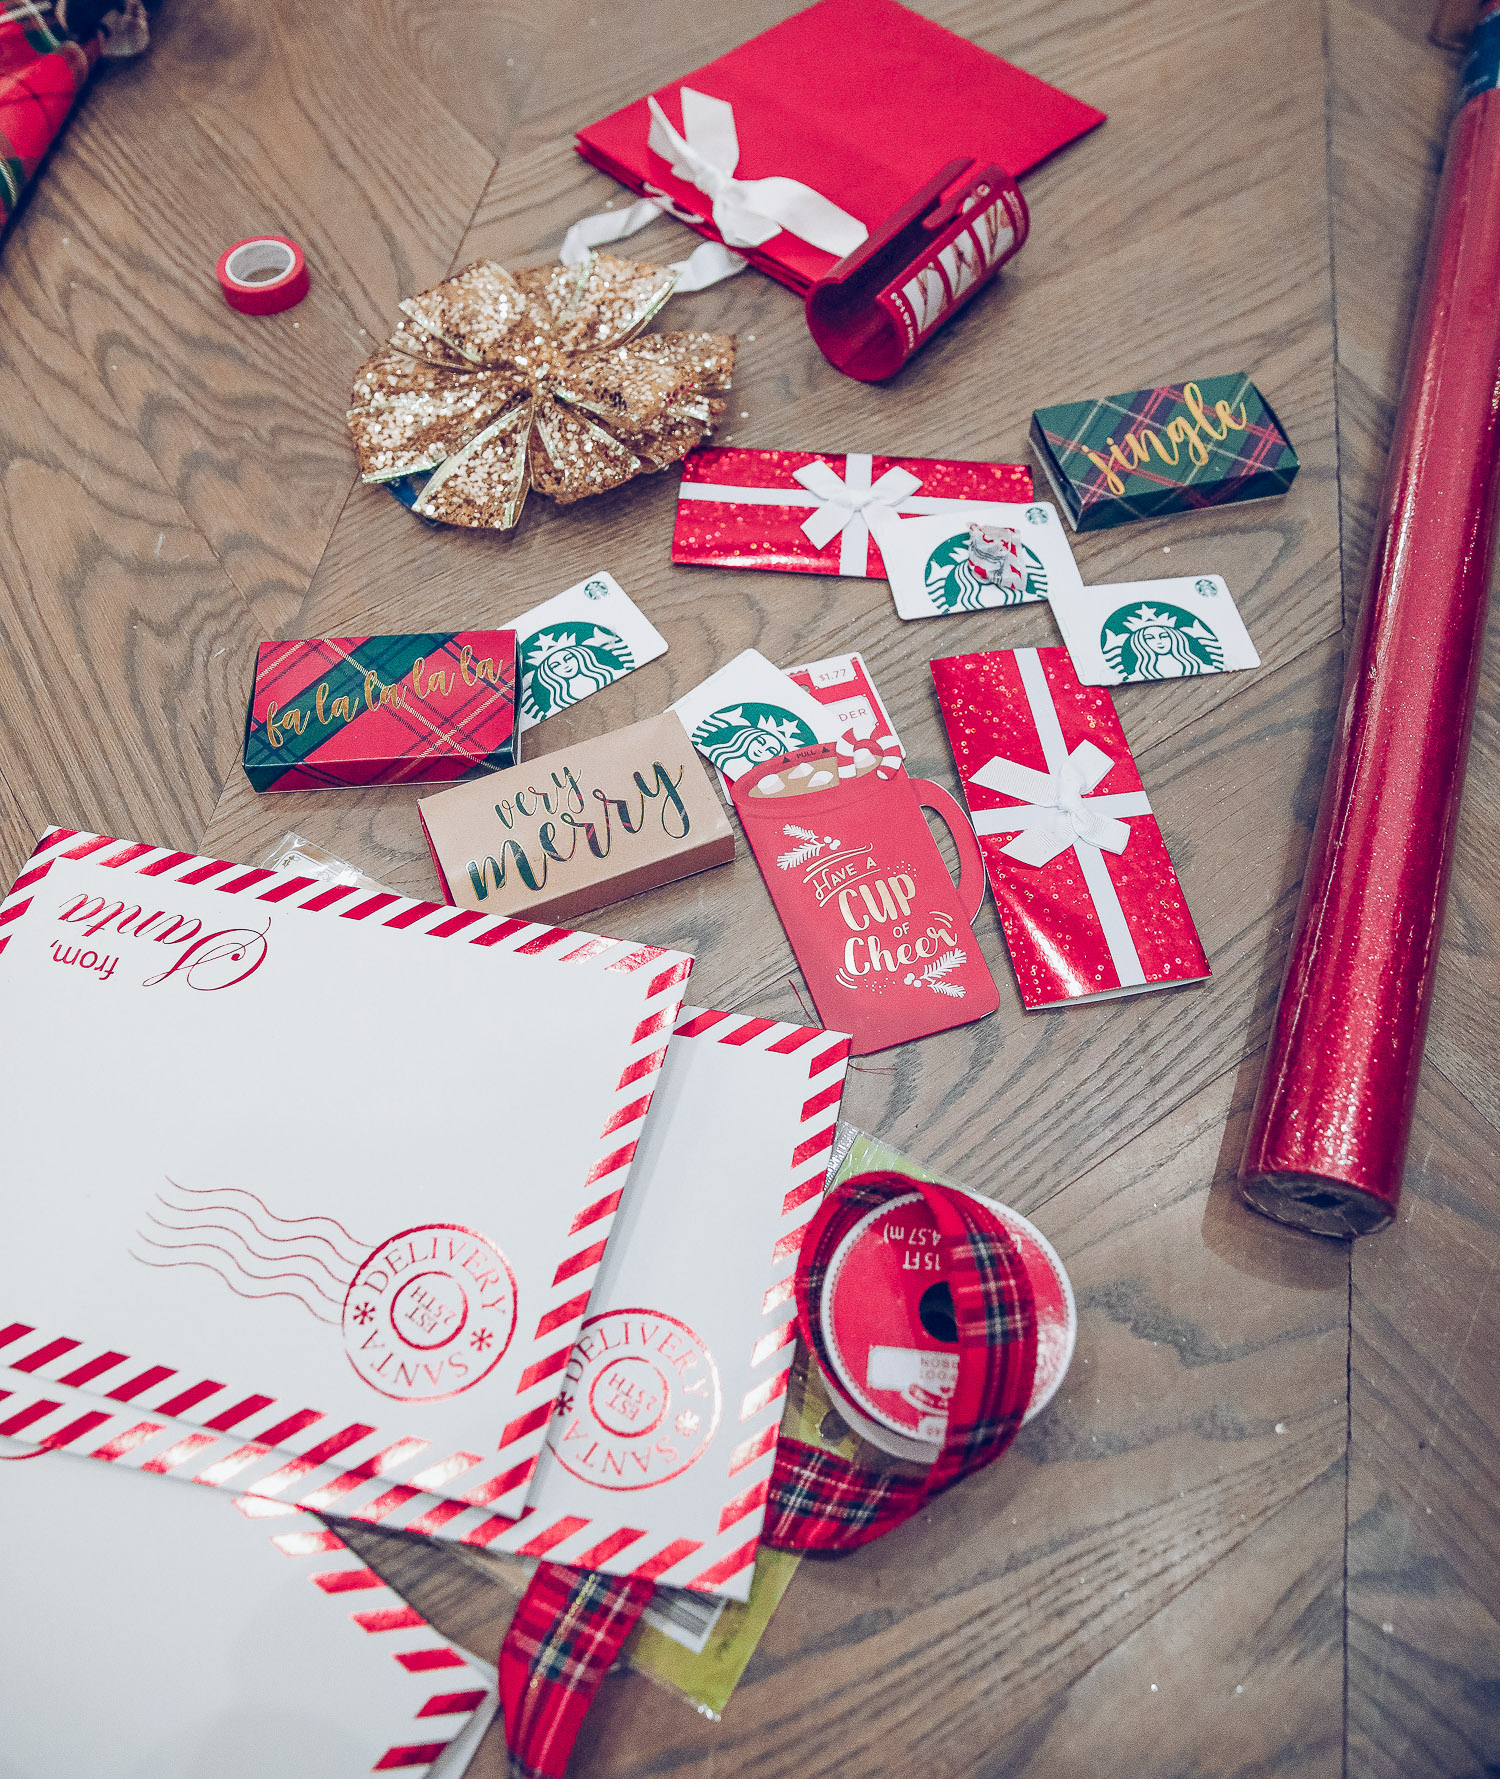 walmart gift wrap christmas 2020, shop hello holidays christmas tree, magnetic me PJs, emily ann gemma-10 |Gift Wrapping Ideas by popular US life and style blog, The Sweetest Thing: image of gift card envelops, red gift bag, gold gift bow, red wrapping paper and a plaid ribbon.